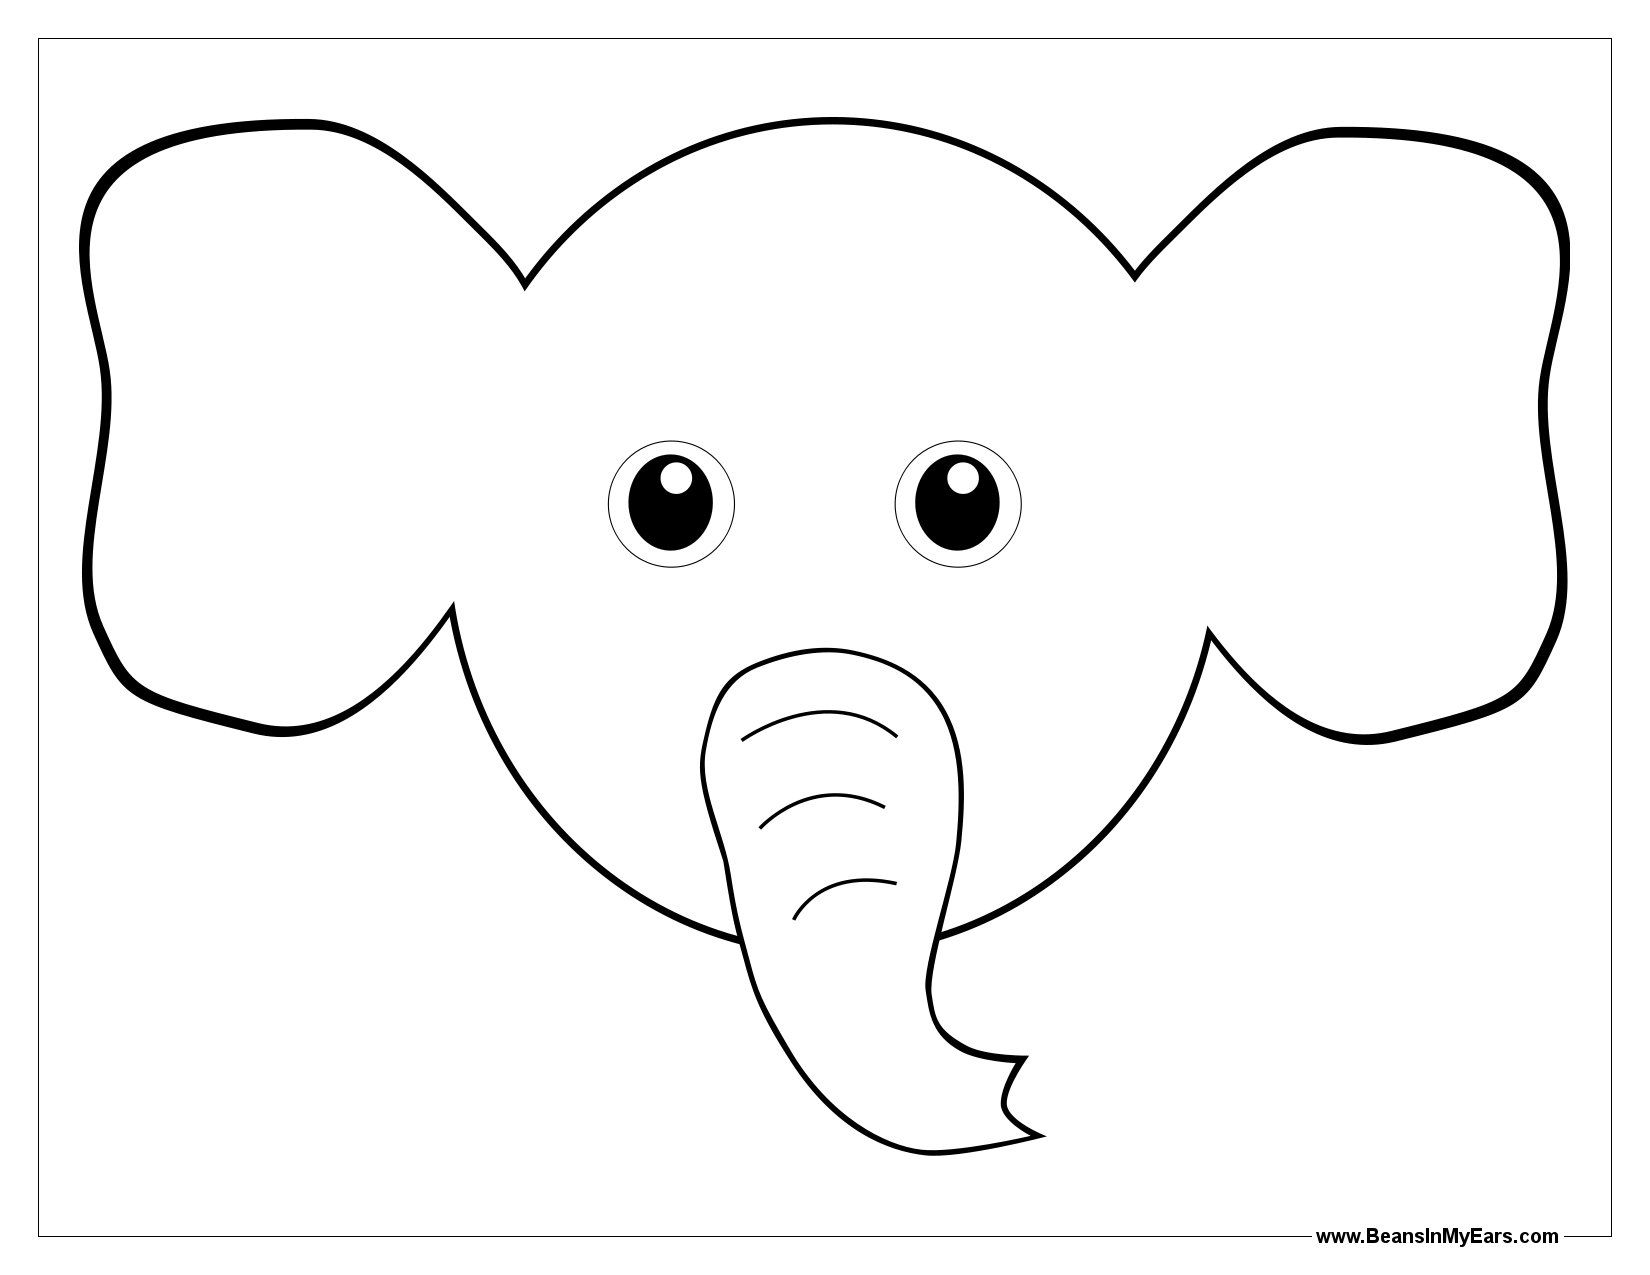 Elephant Face Coloring Page.